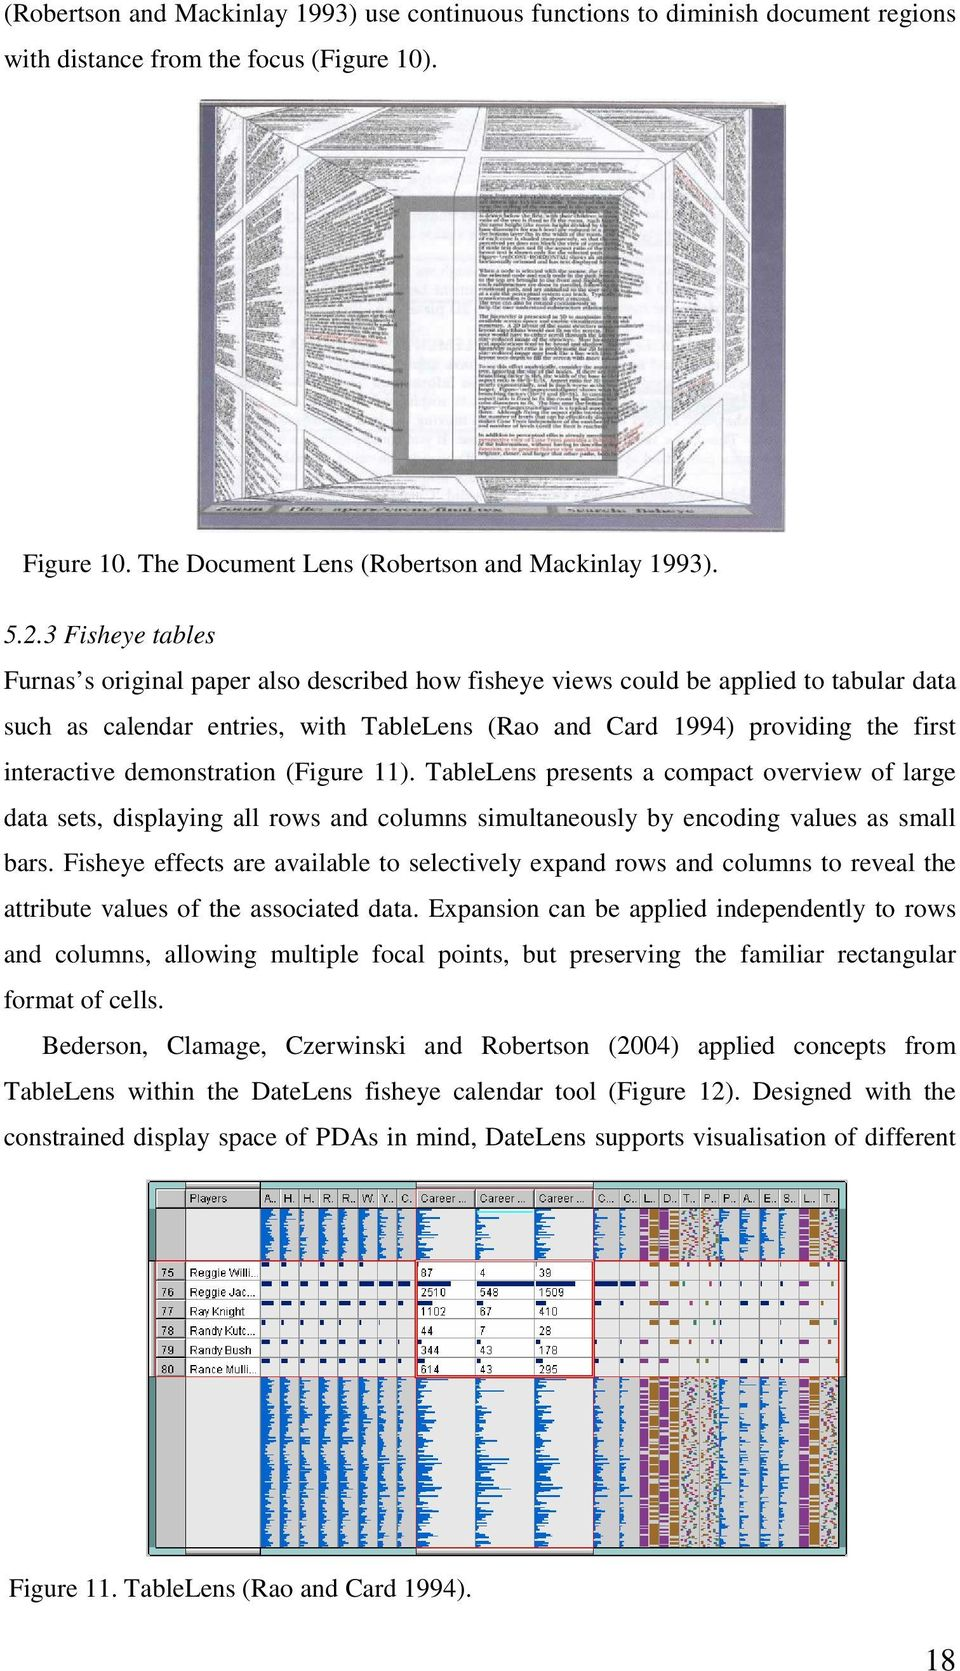 demonstration (Figure 11). TableLens presents a compact overview of large data sets, displaying all rows and columns simultaneously by encoding values as small bars.